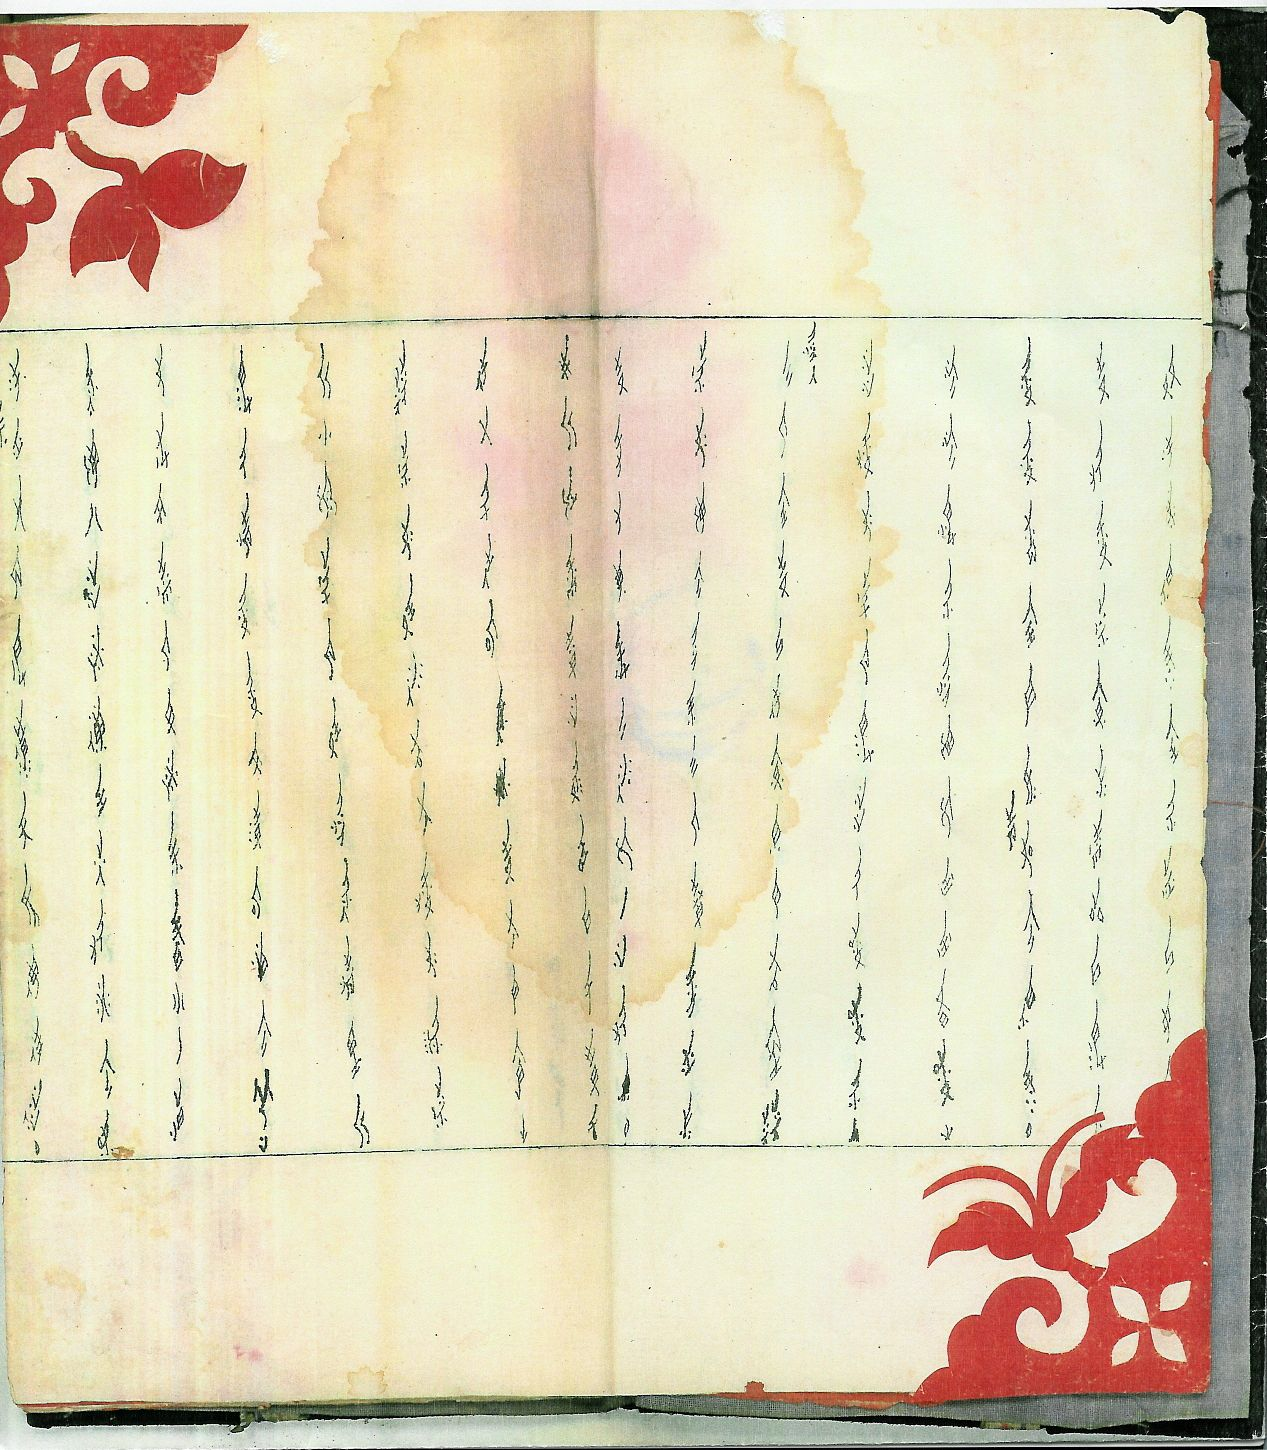 Nushu Writing- a form syllabic script in China used exclusively by women, and almost extinct with very few able to write it today.